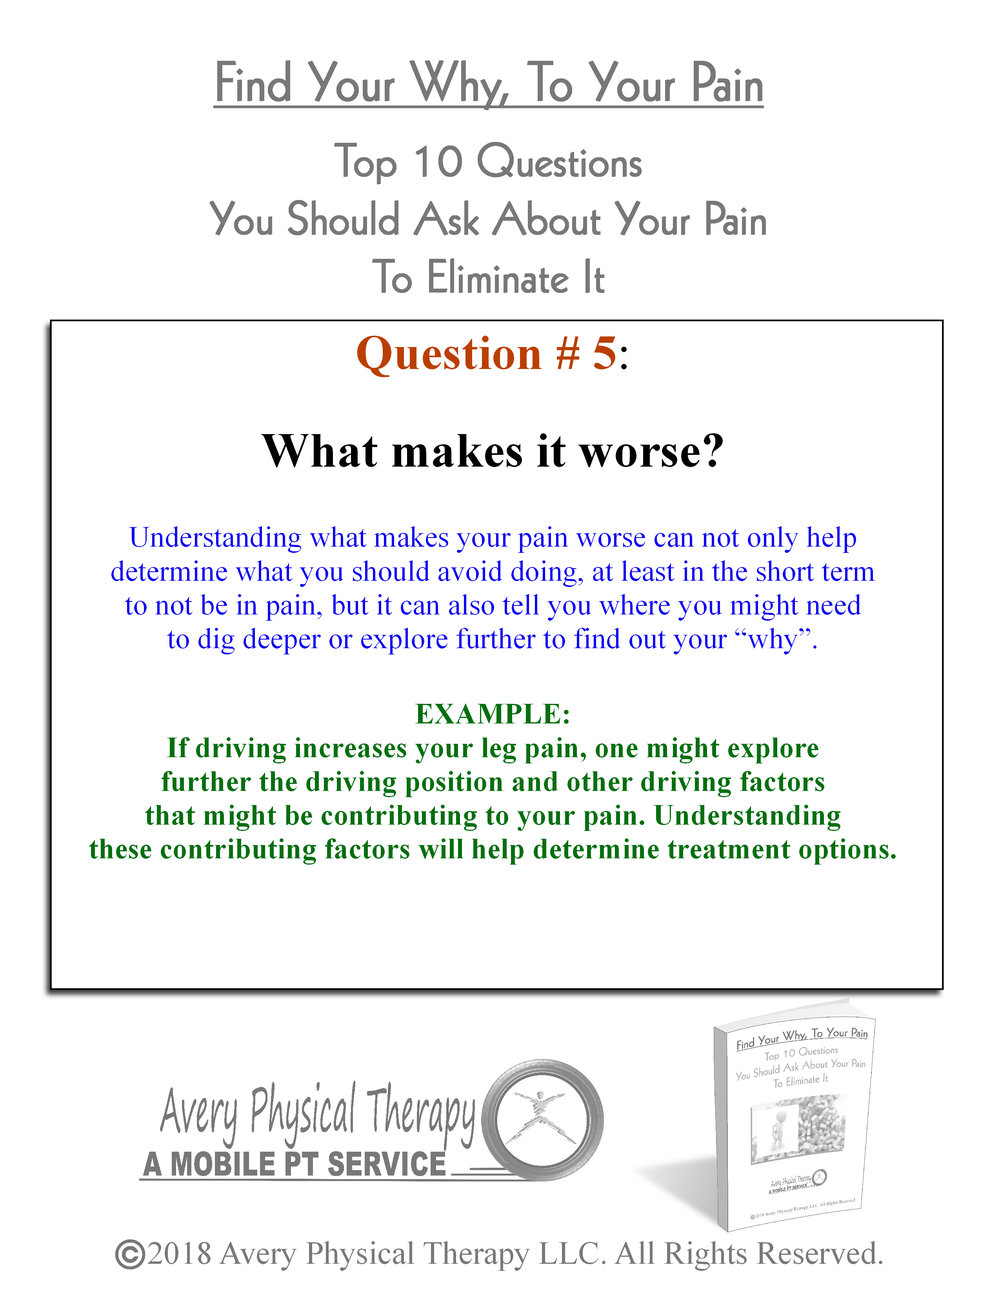 Top 10 Pain Questions 4-6F.JPG